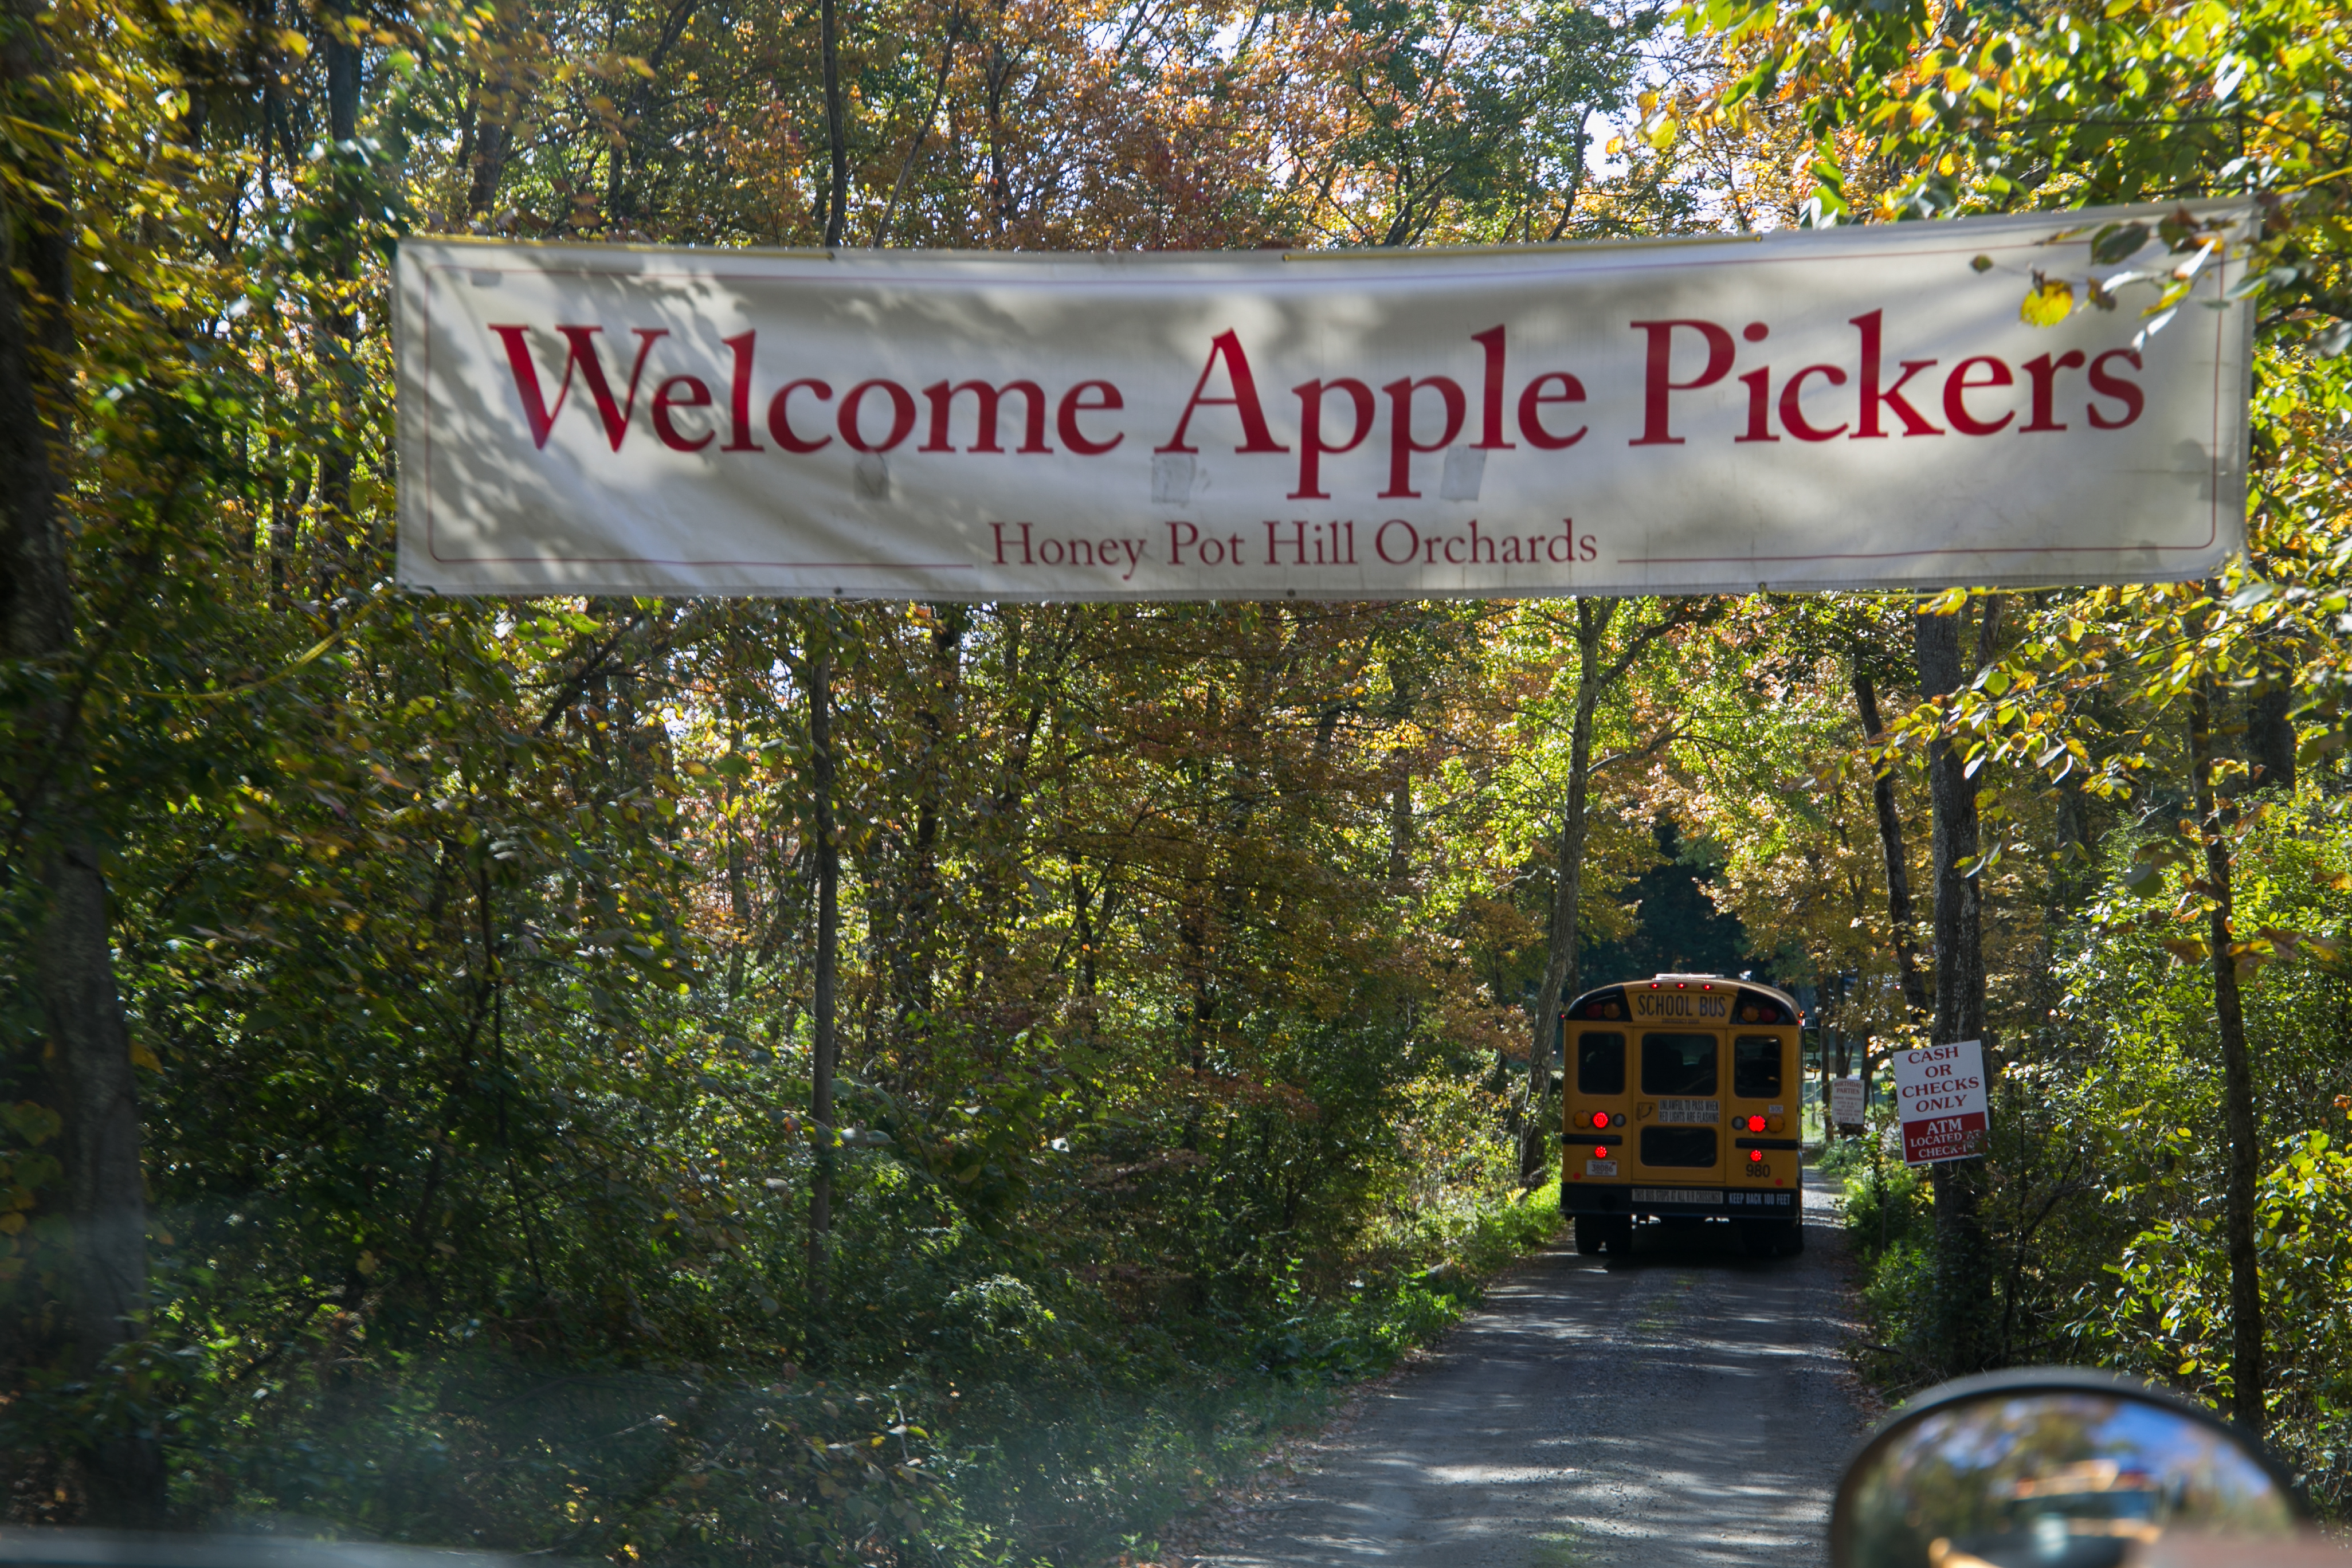 Boston University students were given the oppurtunity to get out of the city on Saturday, Oct. 15, for a day of apple picking, hay rides, fall foliage, and carmelized apples. Photo by Silvia Mazzocchin/BU News Service